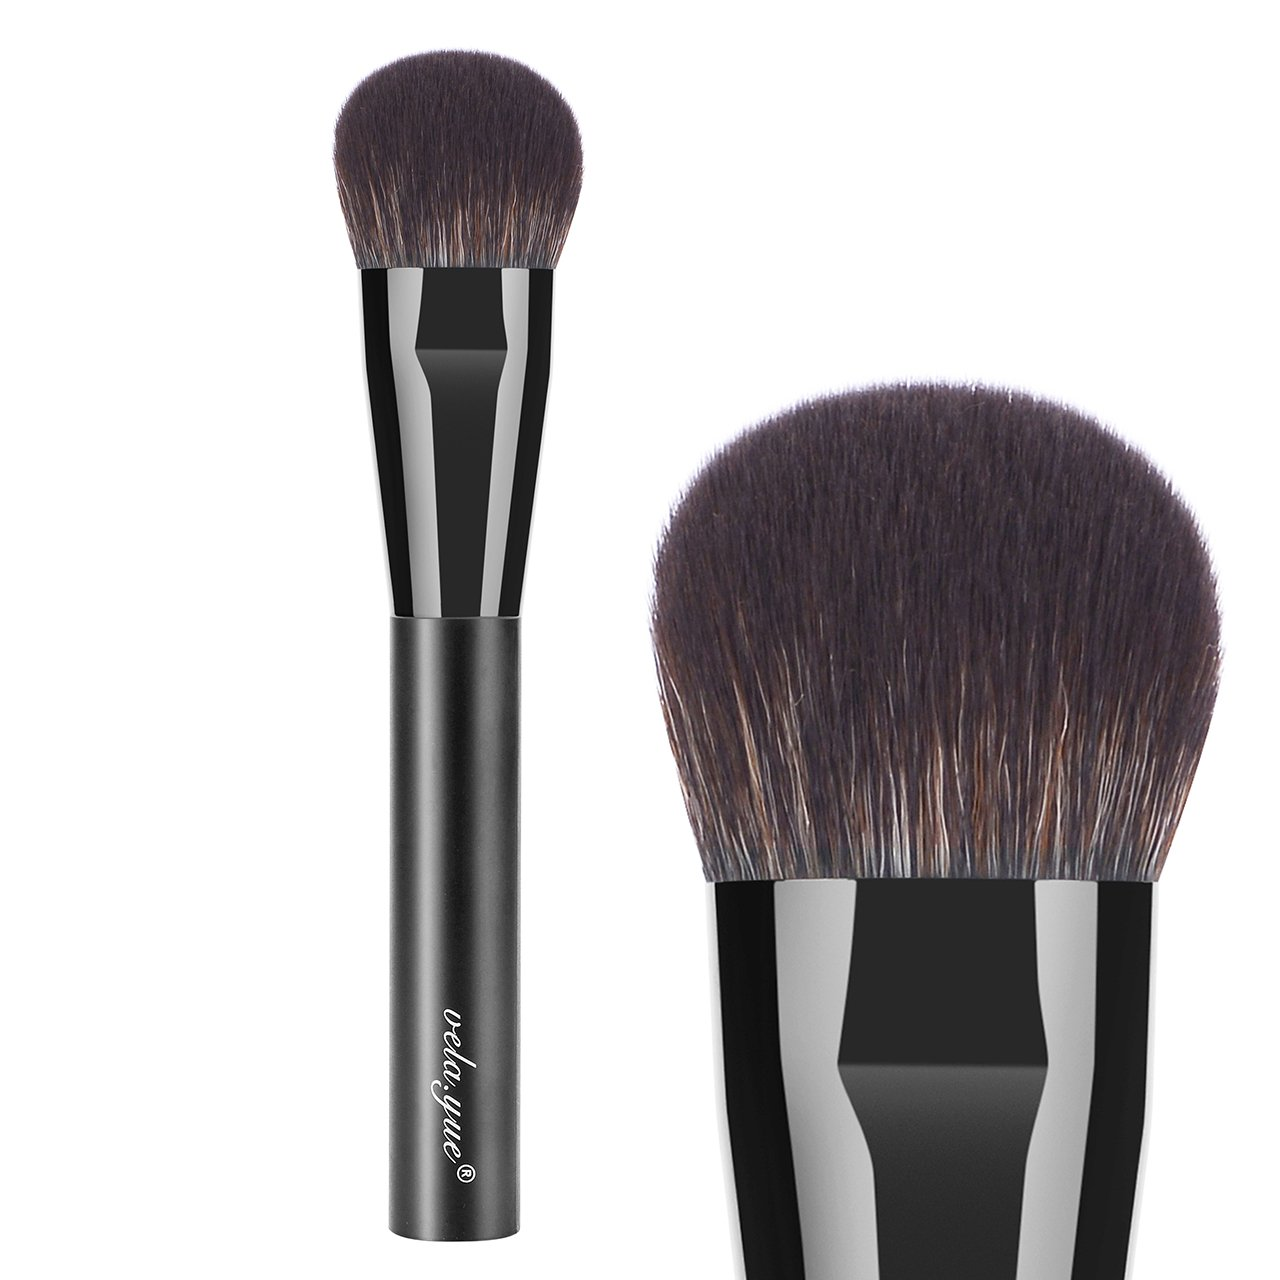 vela.yue Cheek Finish Brush - Silky Smooth Application of Blush, Bronzer and Highlighter VY